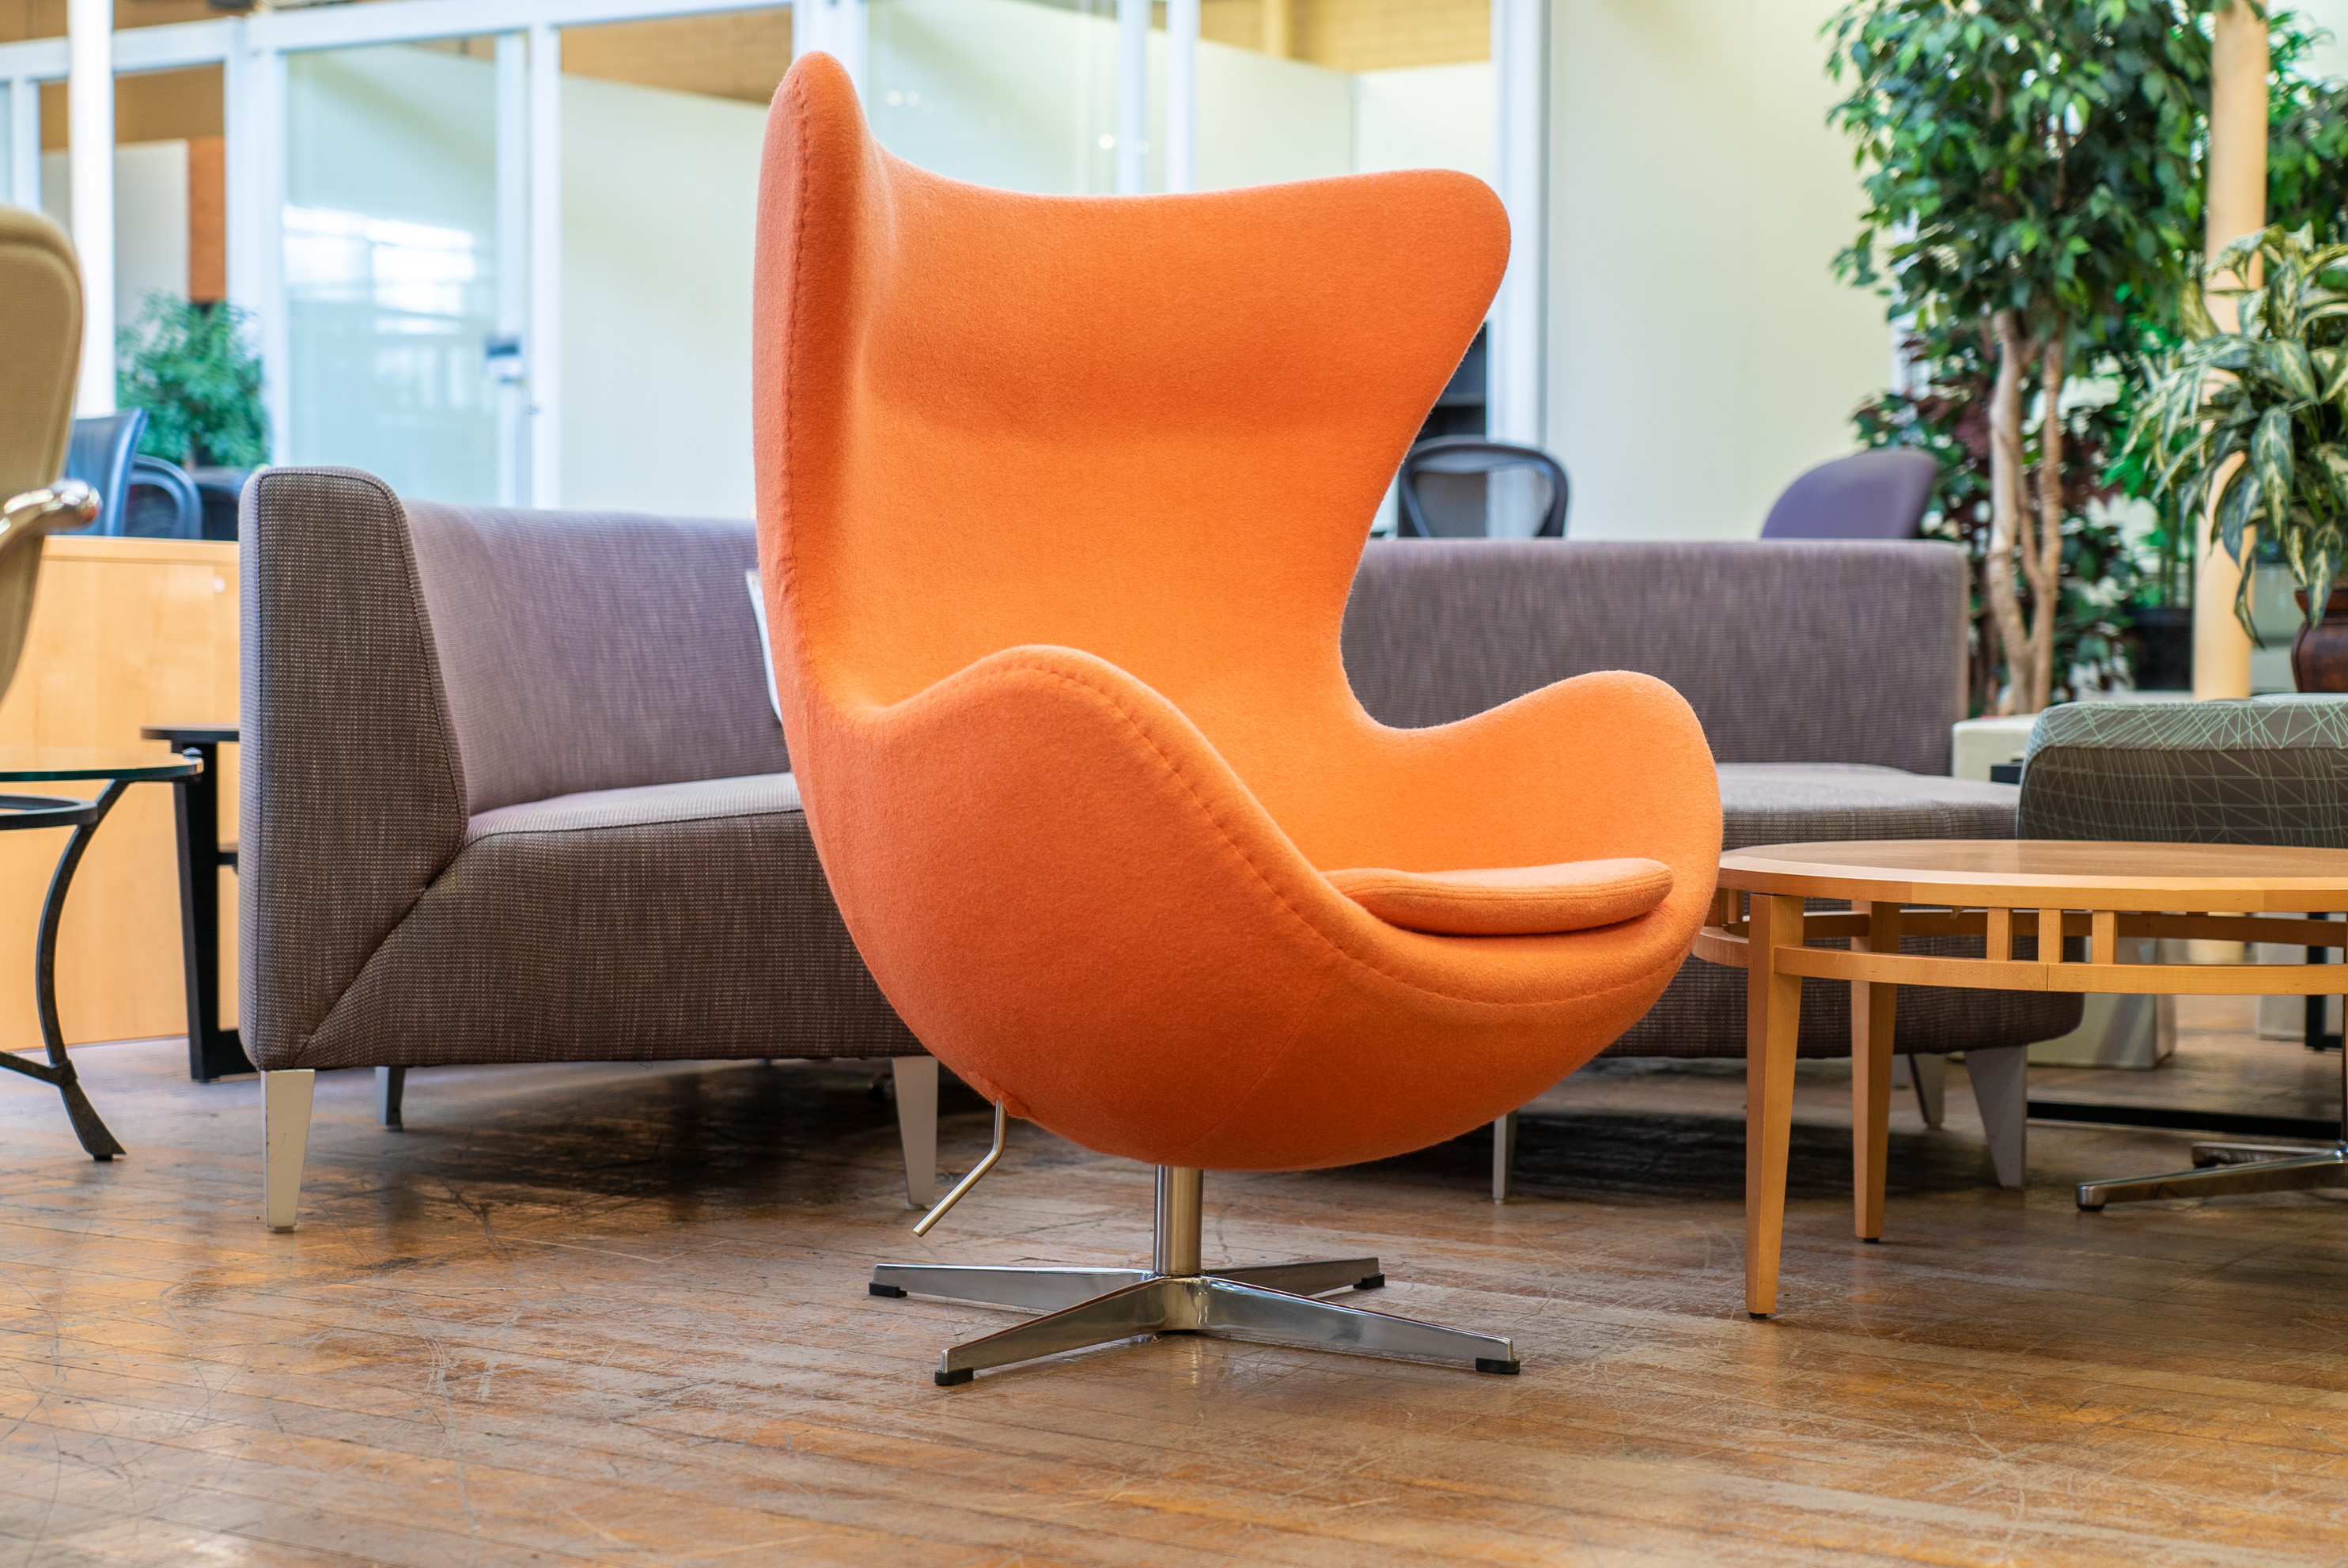 Mlf Arne Jacobsen Egg Chairs Peartree Office Furniture